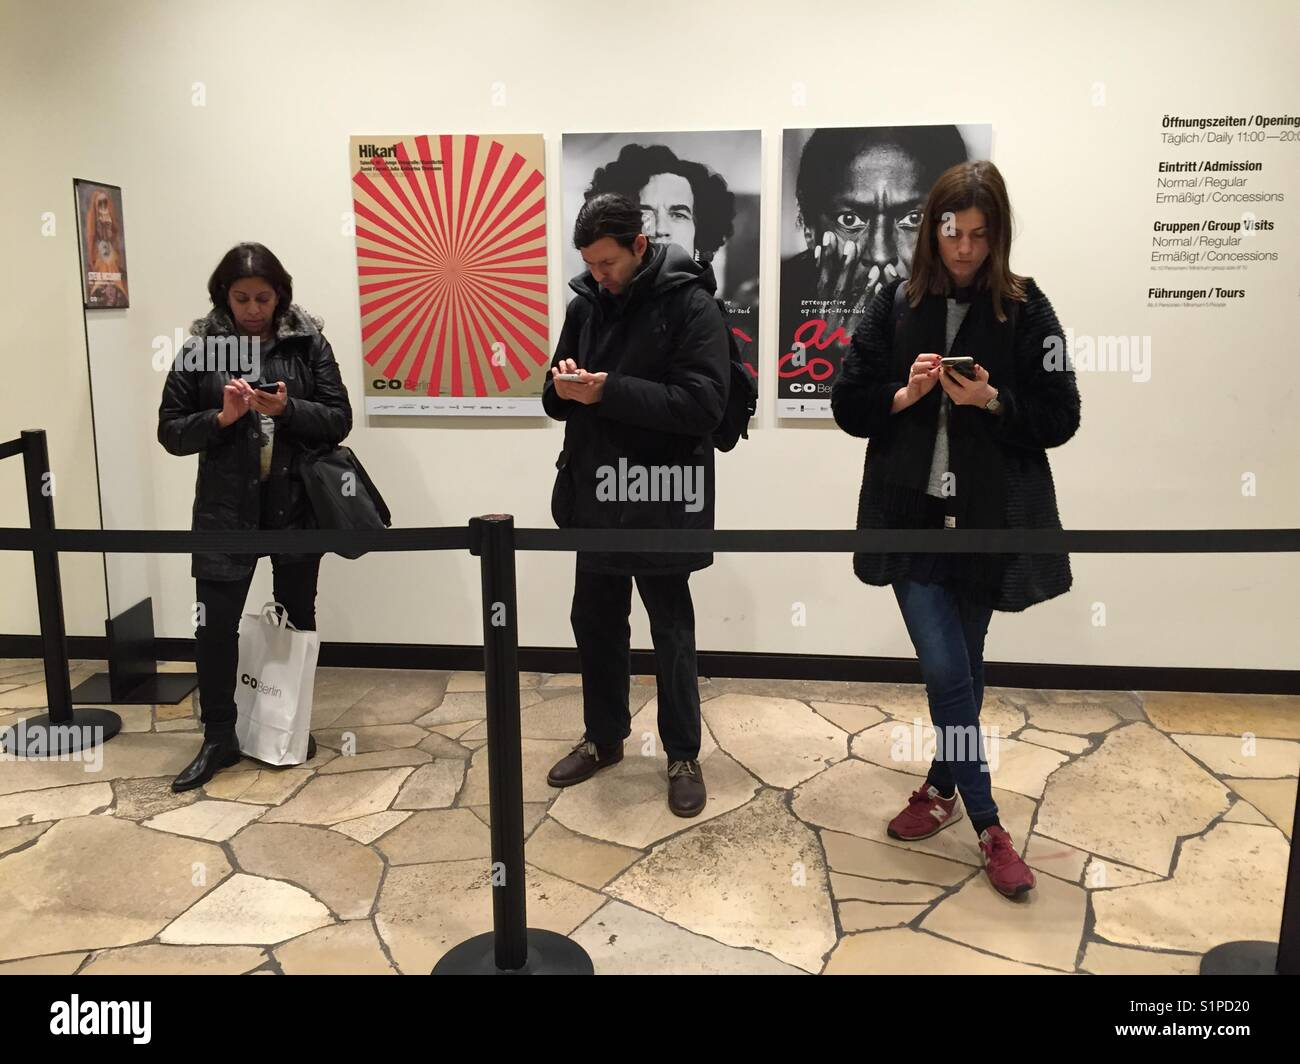 Berlin, America-House: People are using their mobile telephon. - Stock Image